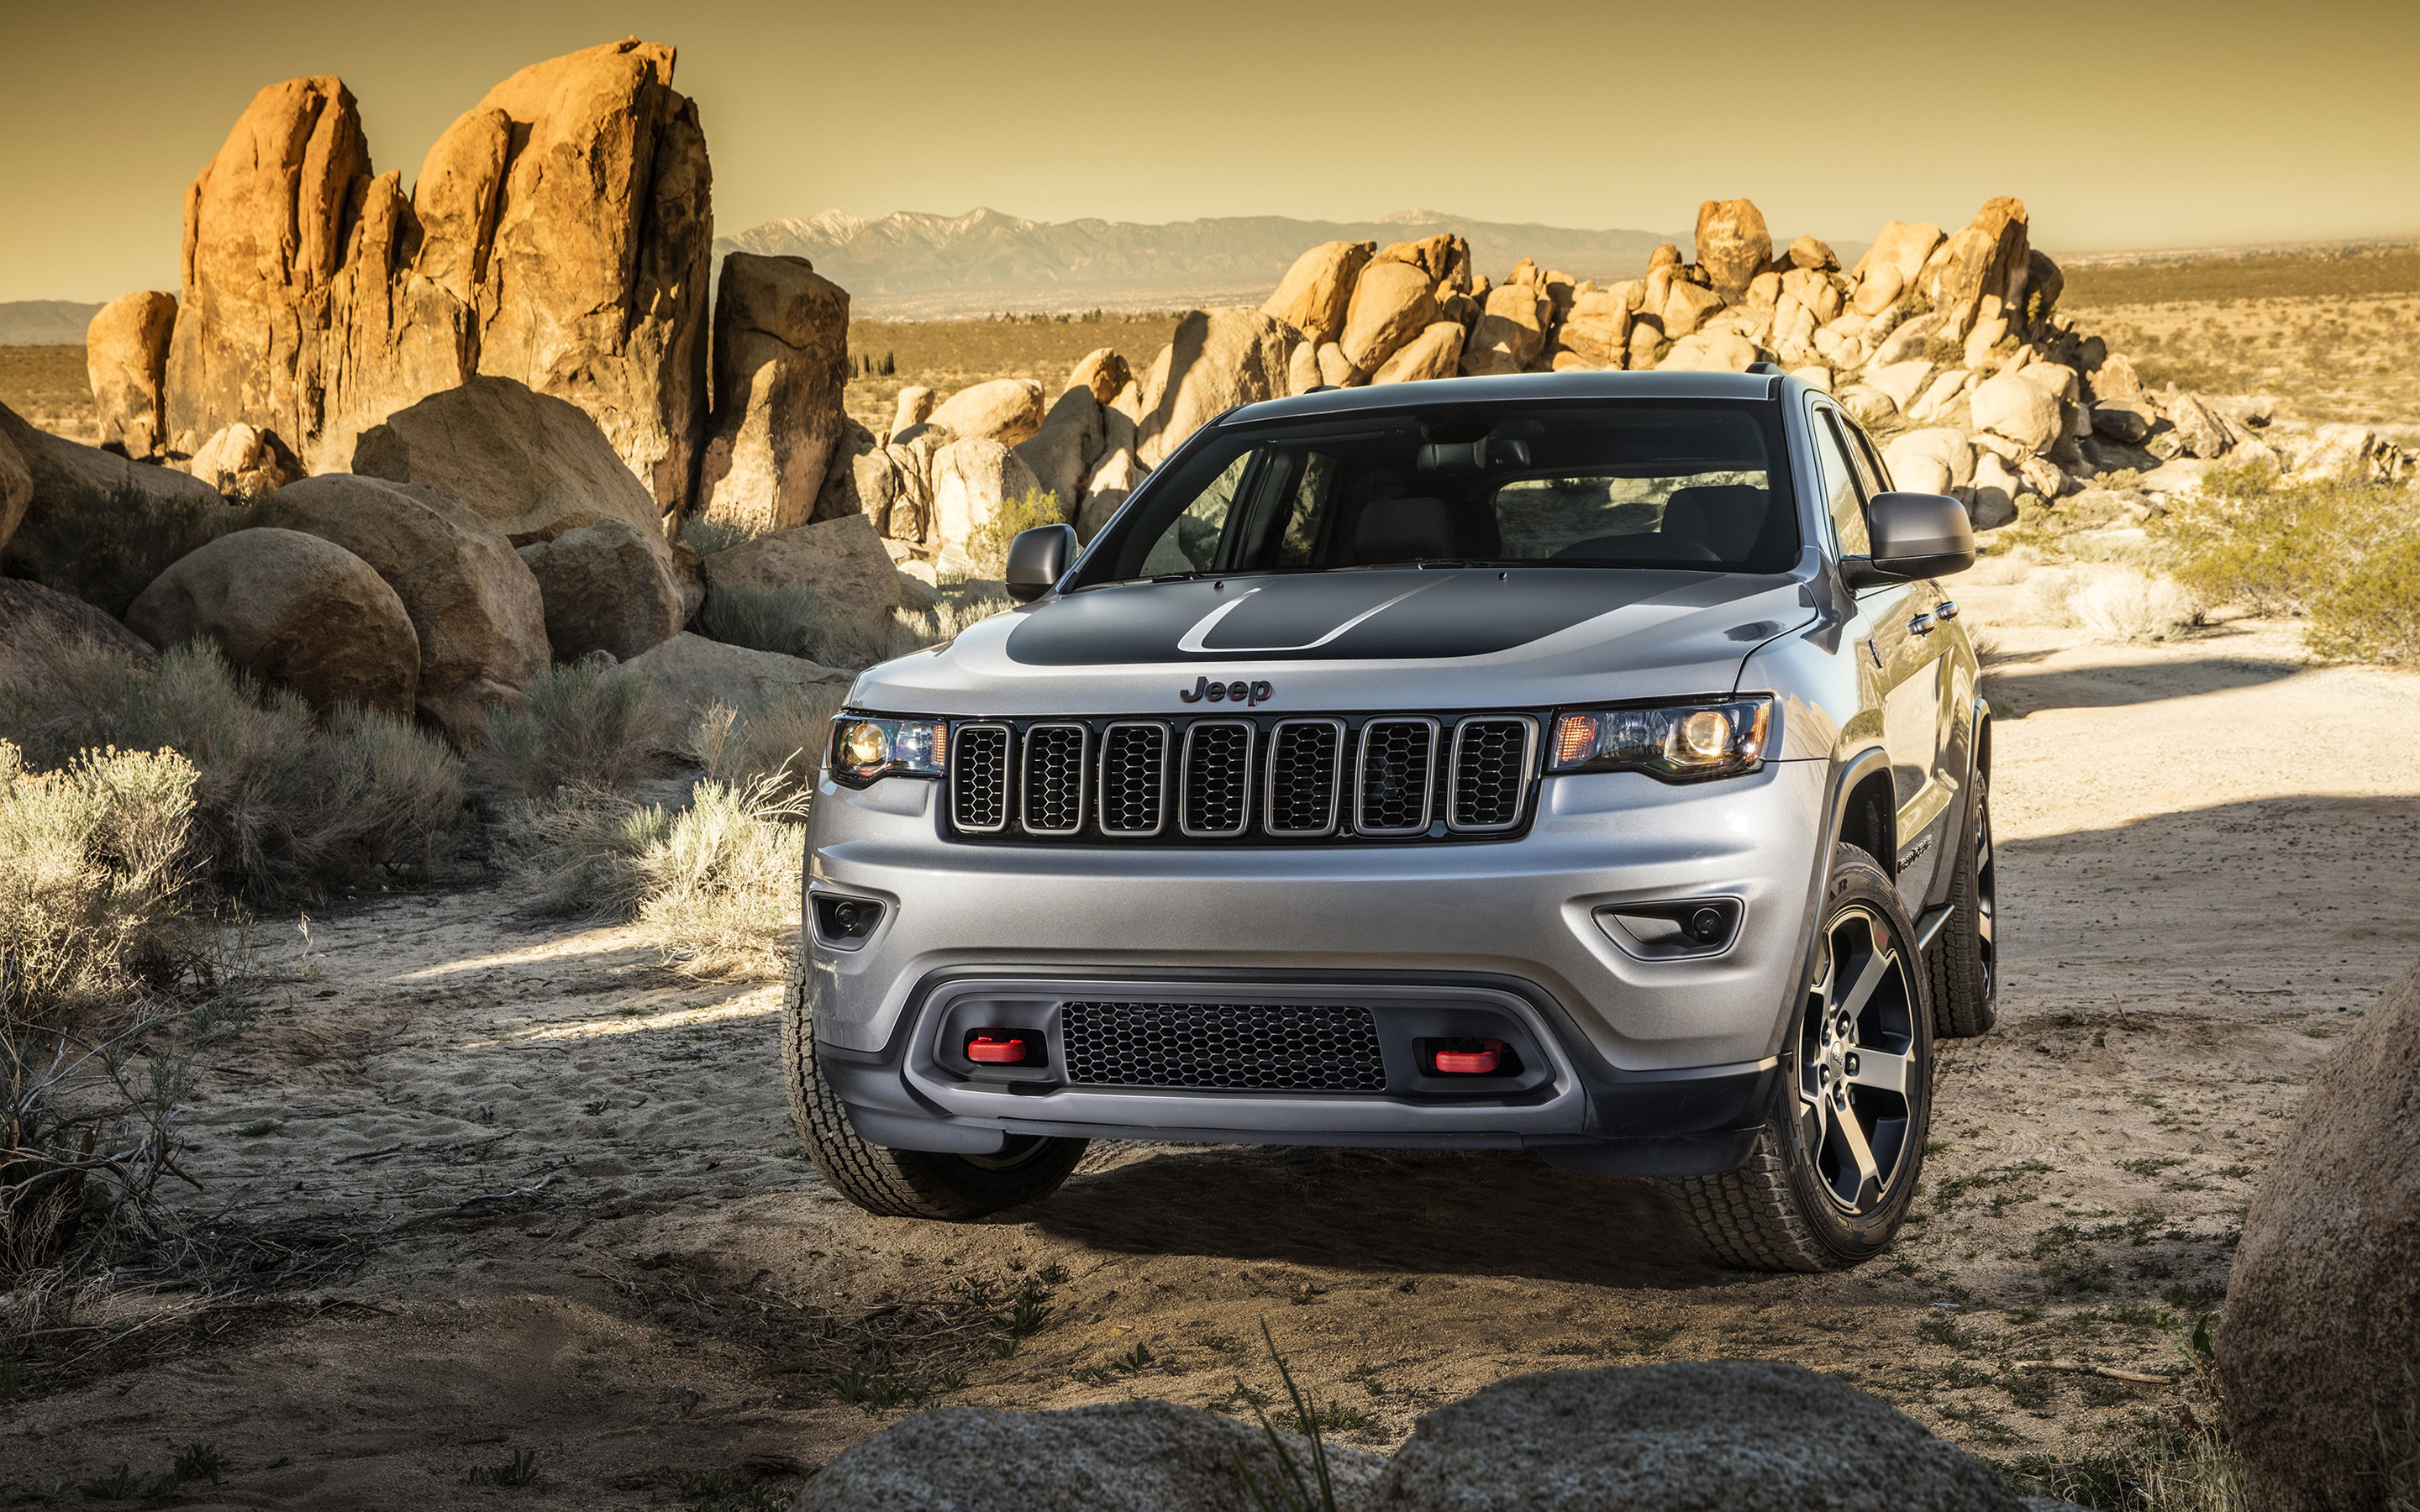 Cherokee 4k Wallpapers For Your Desktop Or Mobile Screen Free And